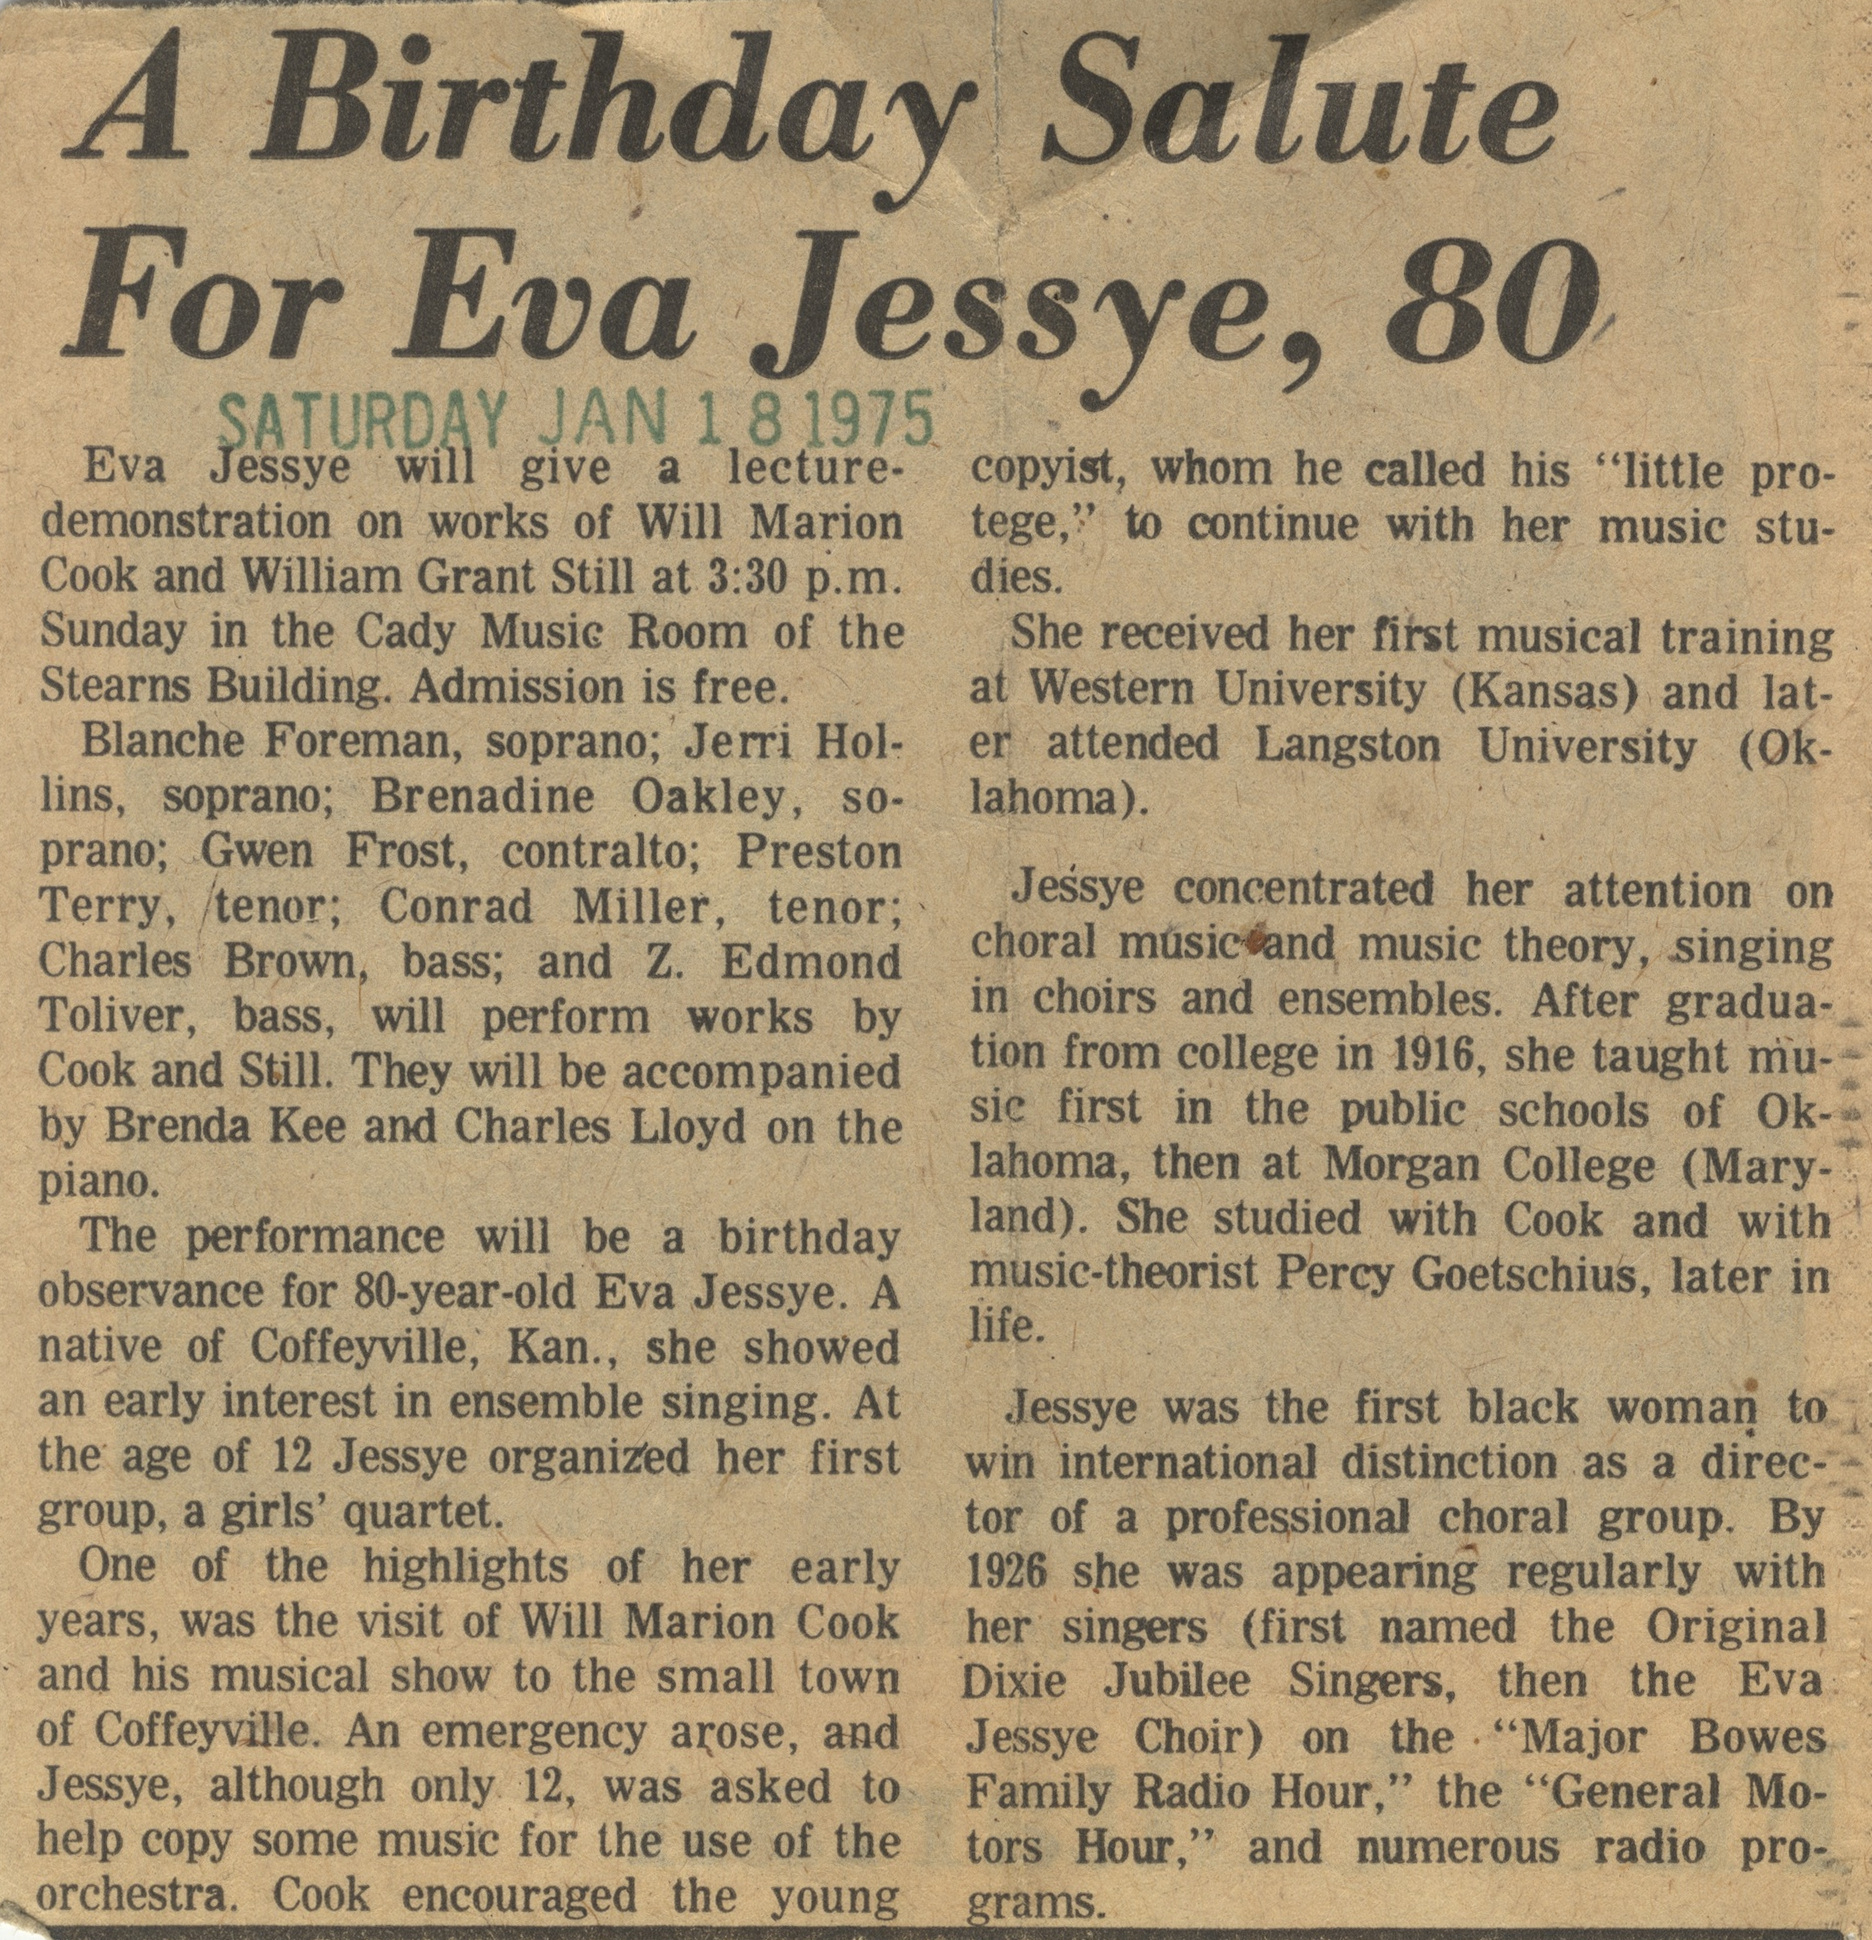 A Birthday Salute For Eva Jessye, 80 image